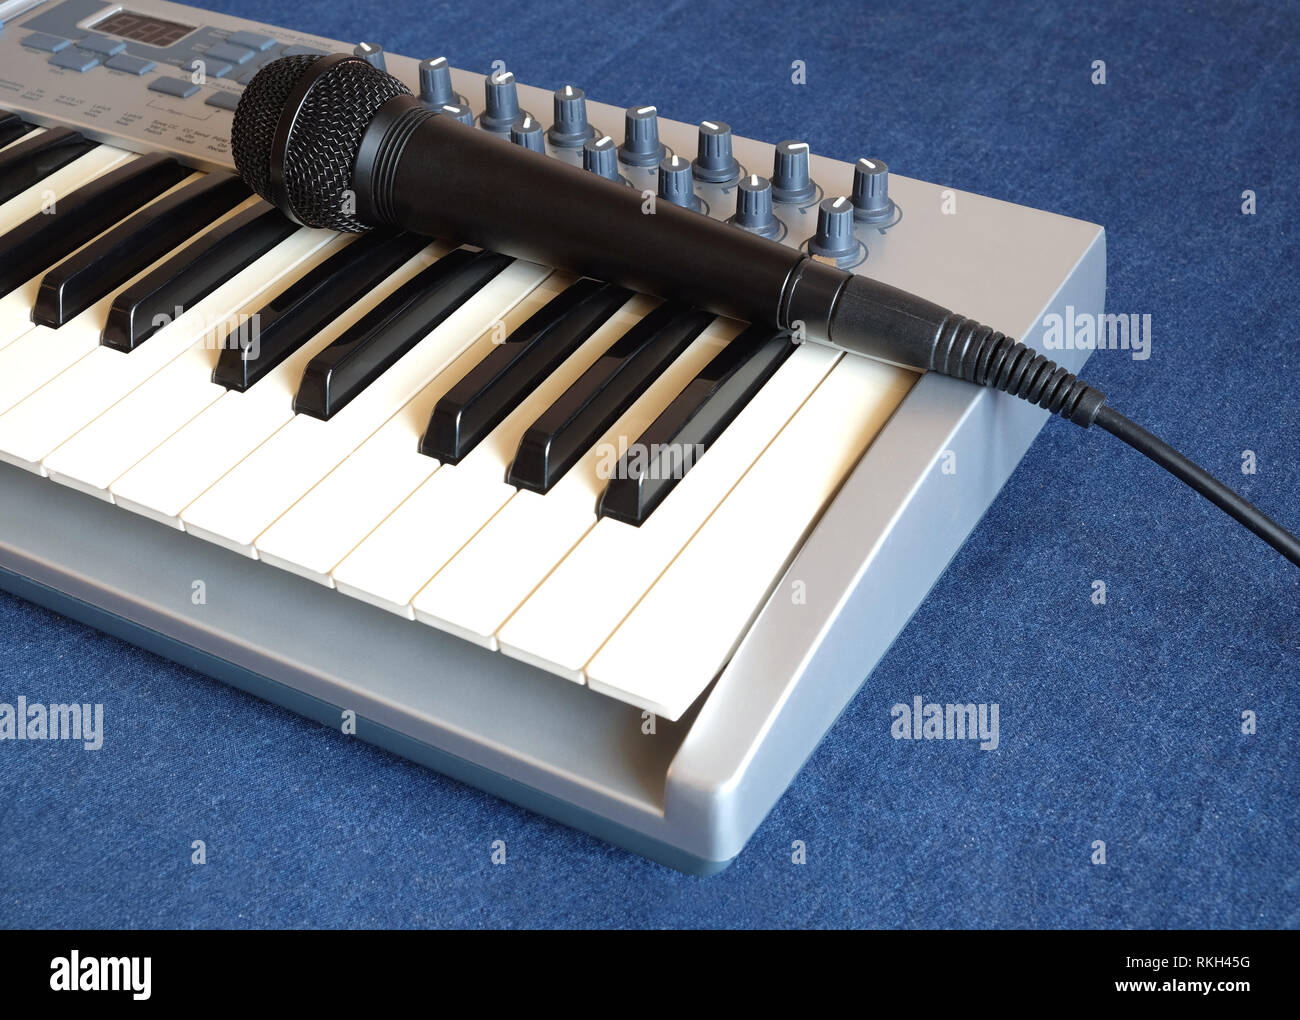 Black microphone on electronic synthesizer keyboard with many control knobs on denim background side view closeup - Stock Image